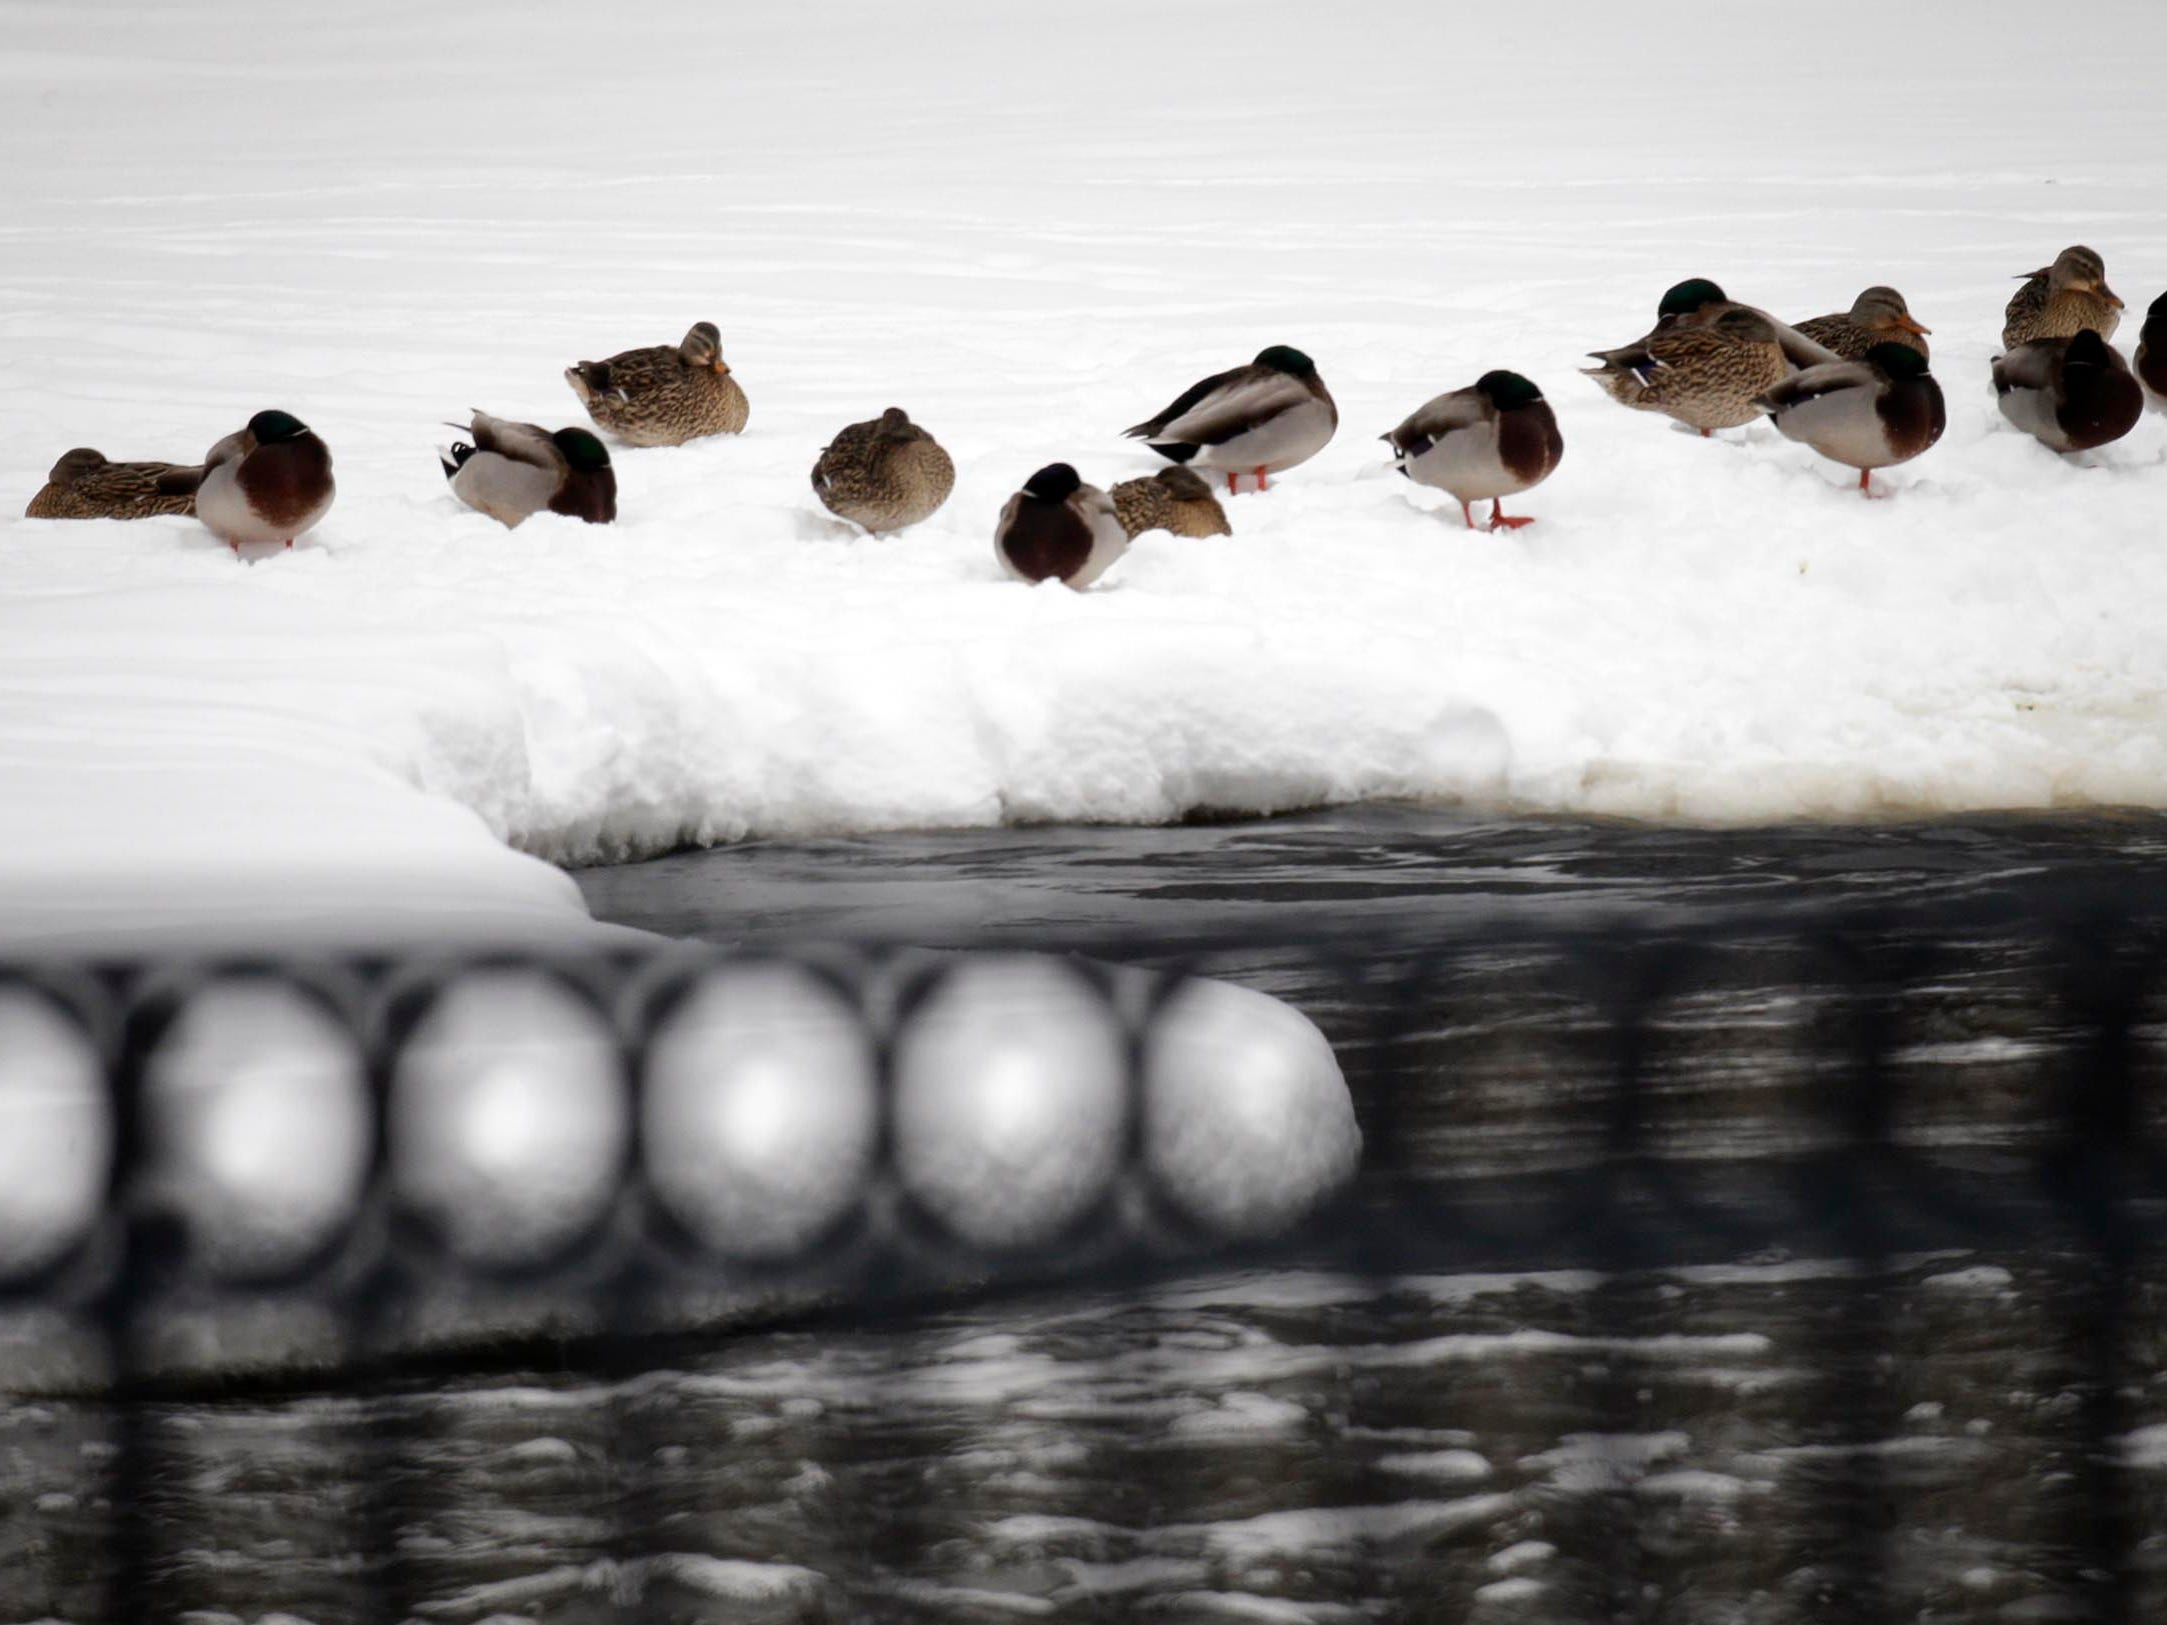 Water fowl wait out the weather on the Sheboygan River at Settlers Park, Tuesday, February 12, 2019, in Sheboygan Falls, Wis.